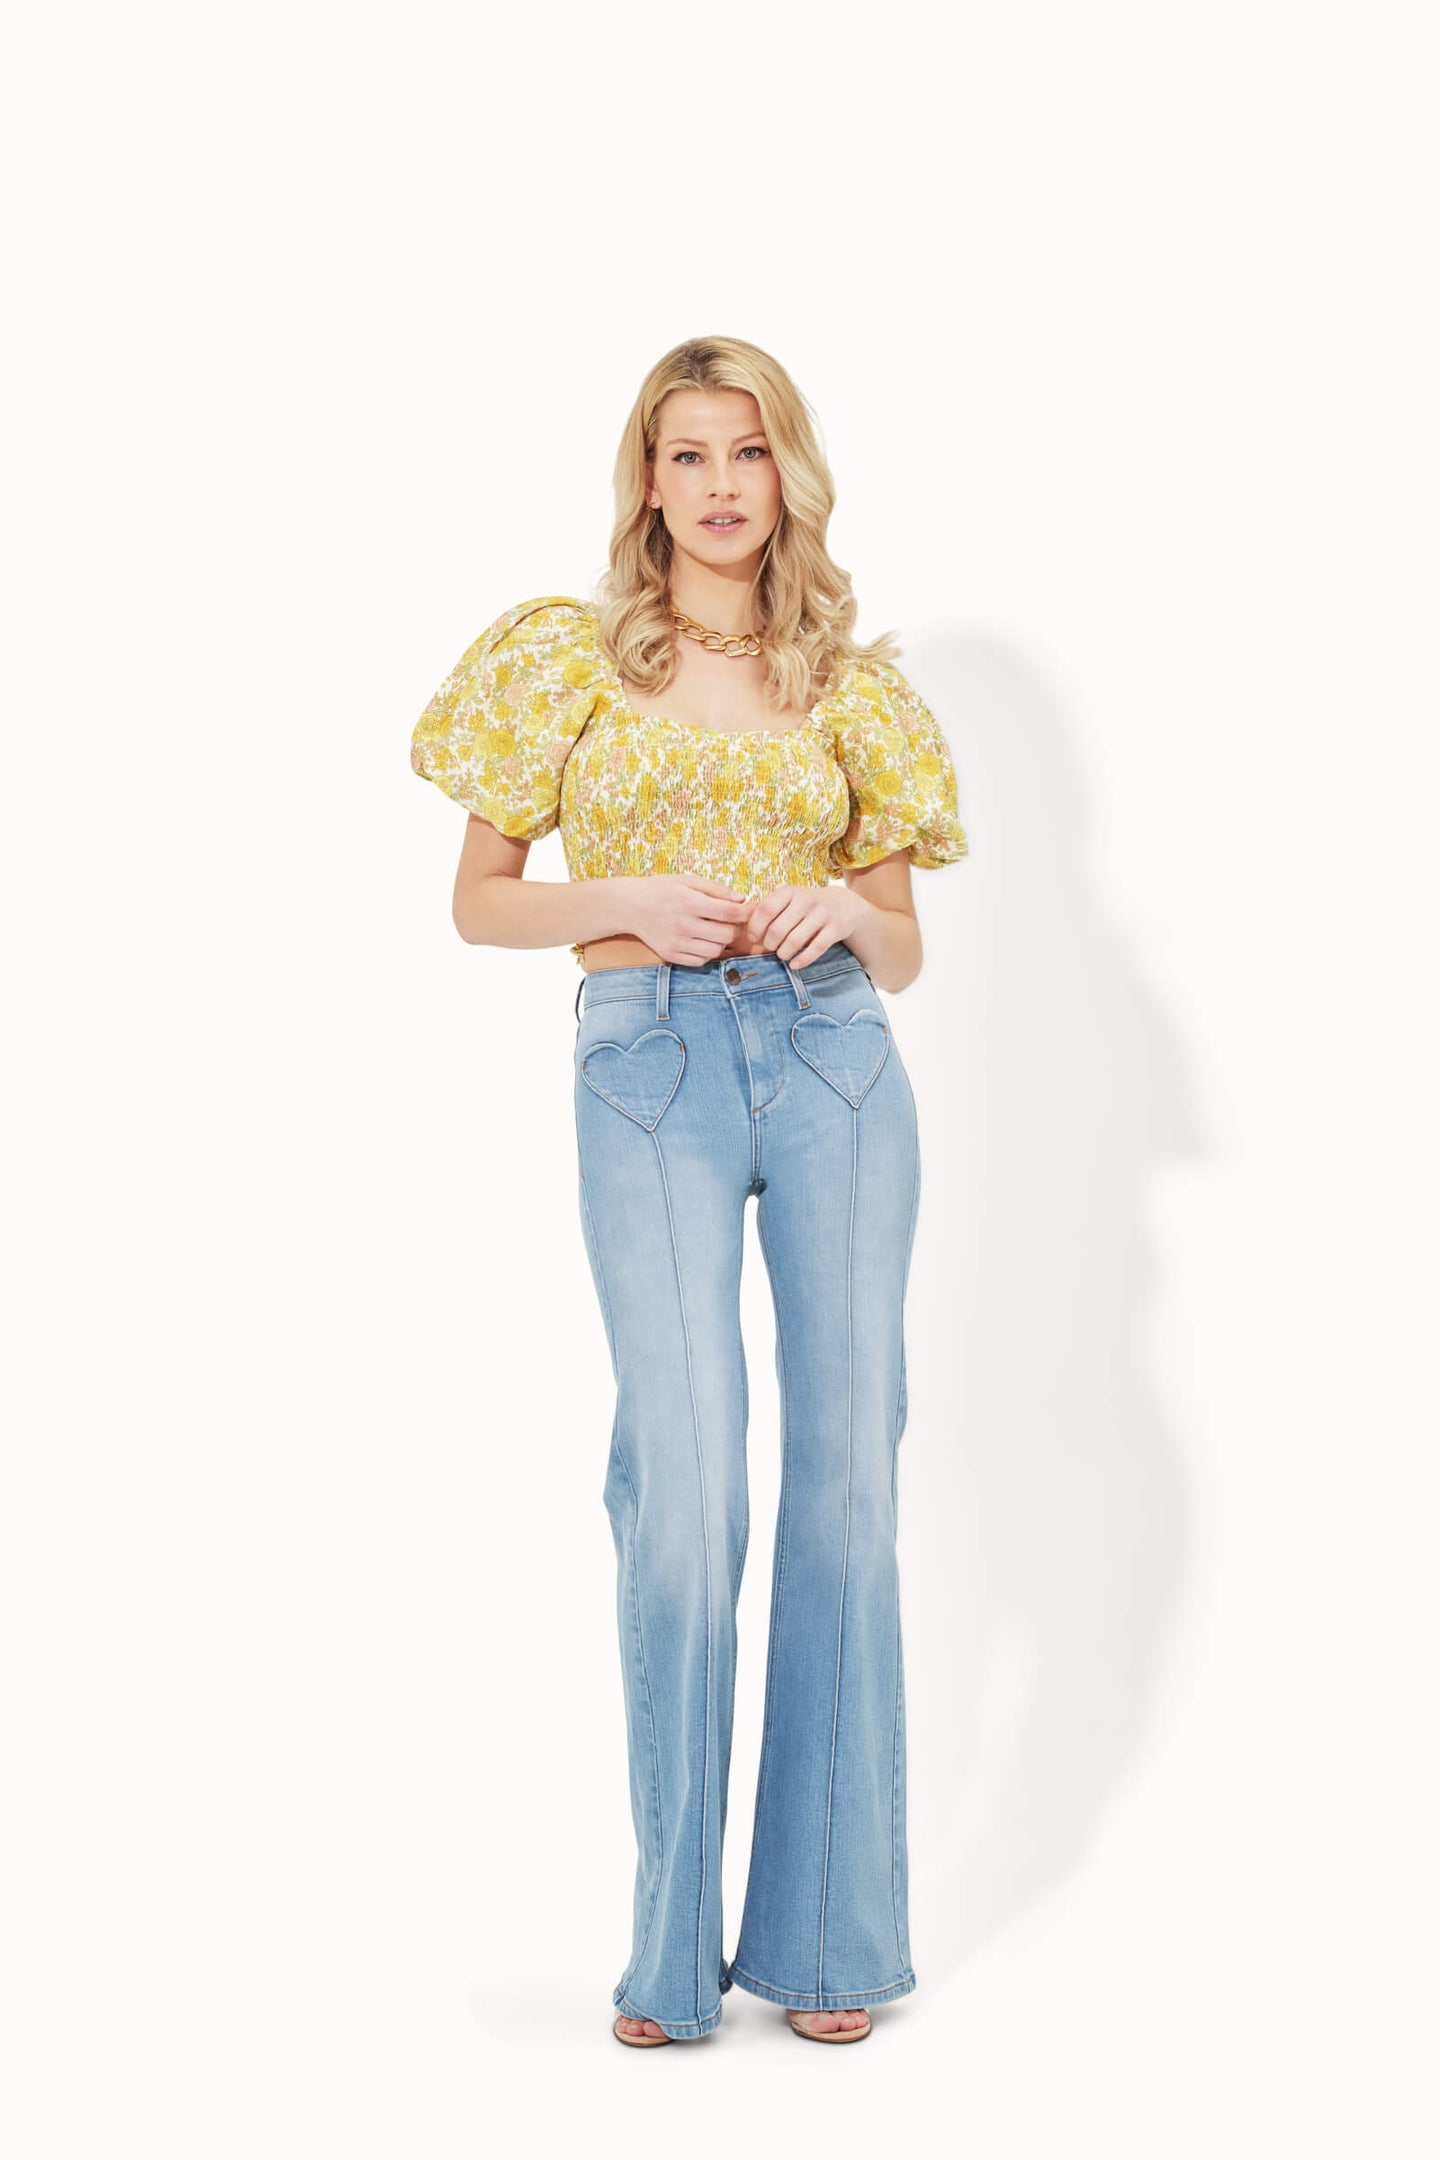 Delilah The High Top Patch Pocket Heart Throb Jeans - Spring Fling